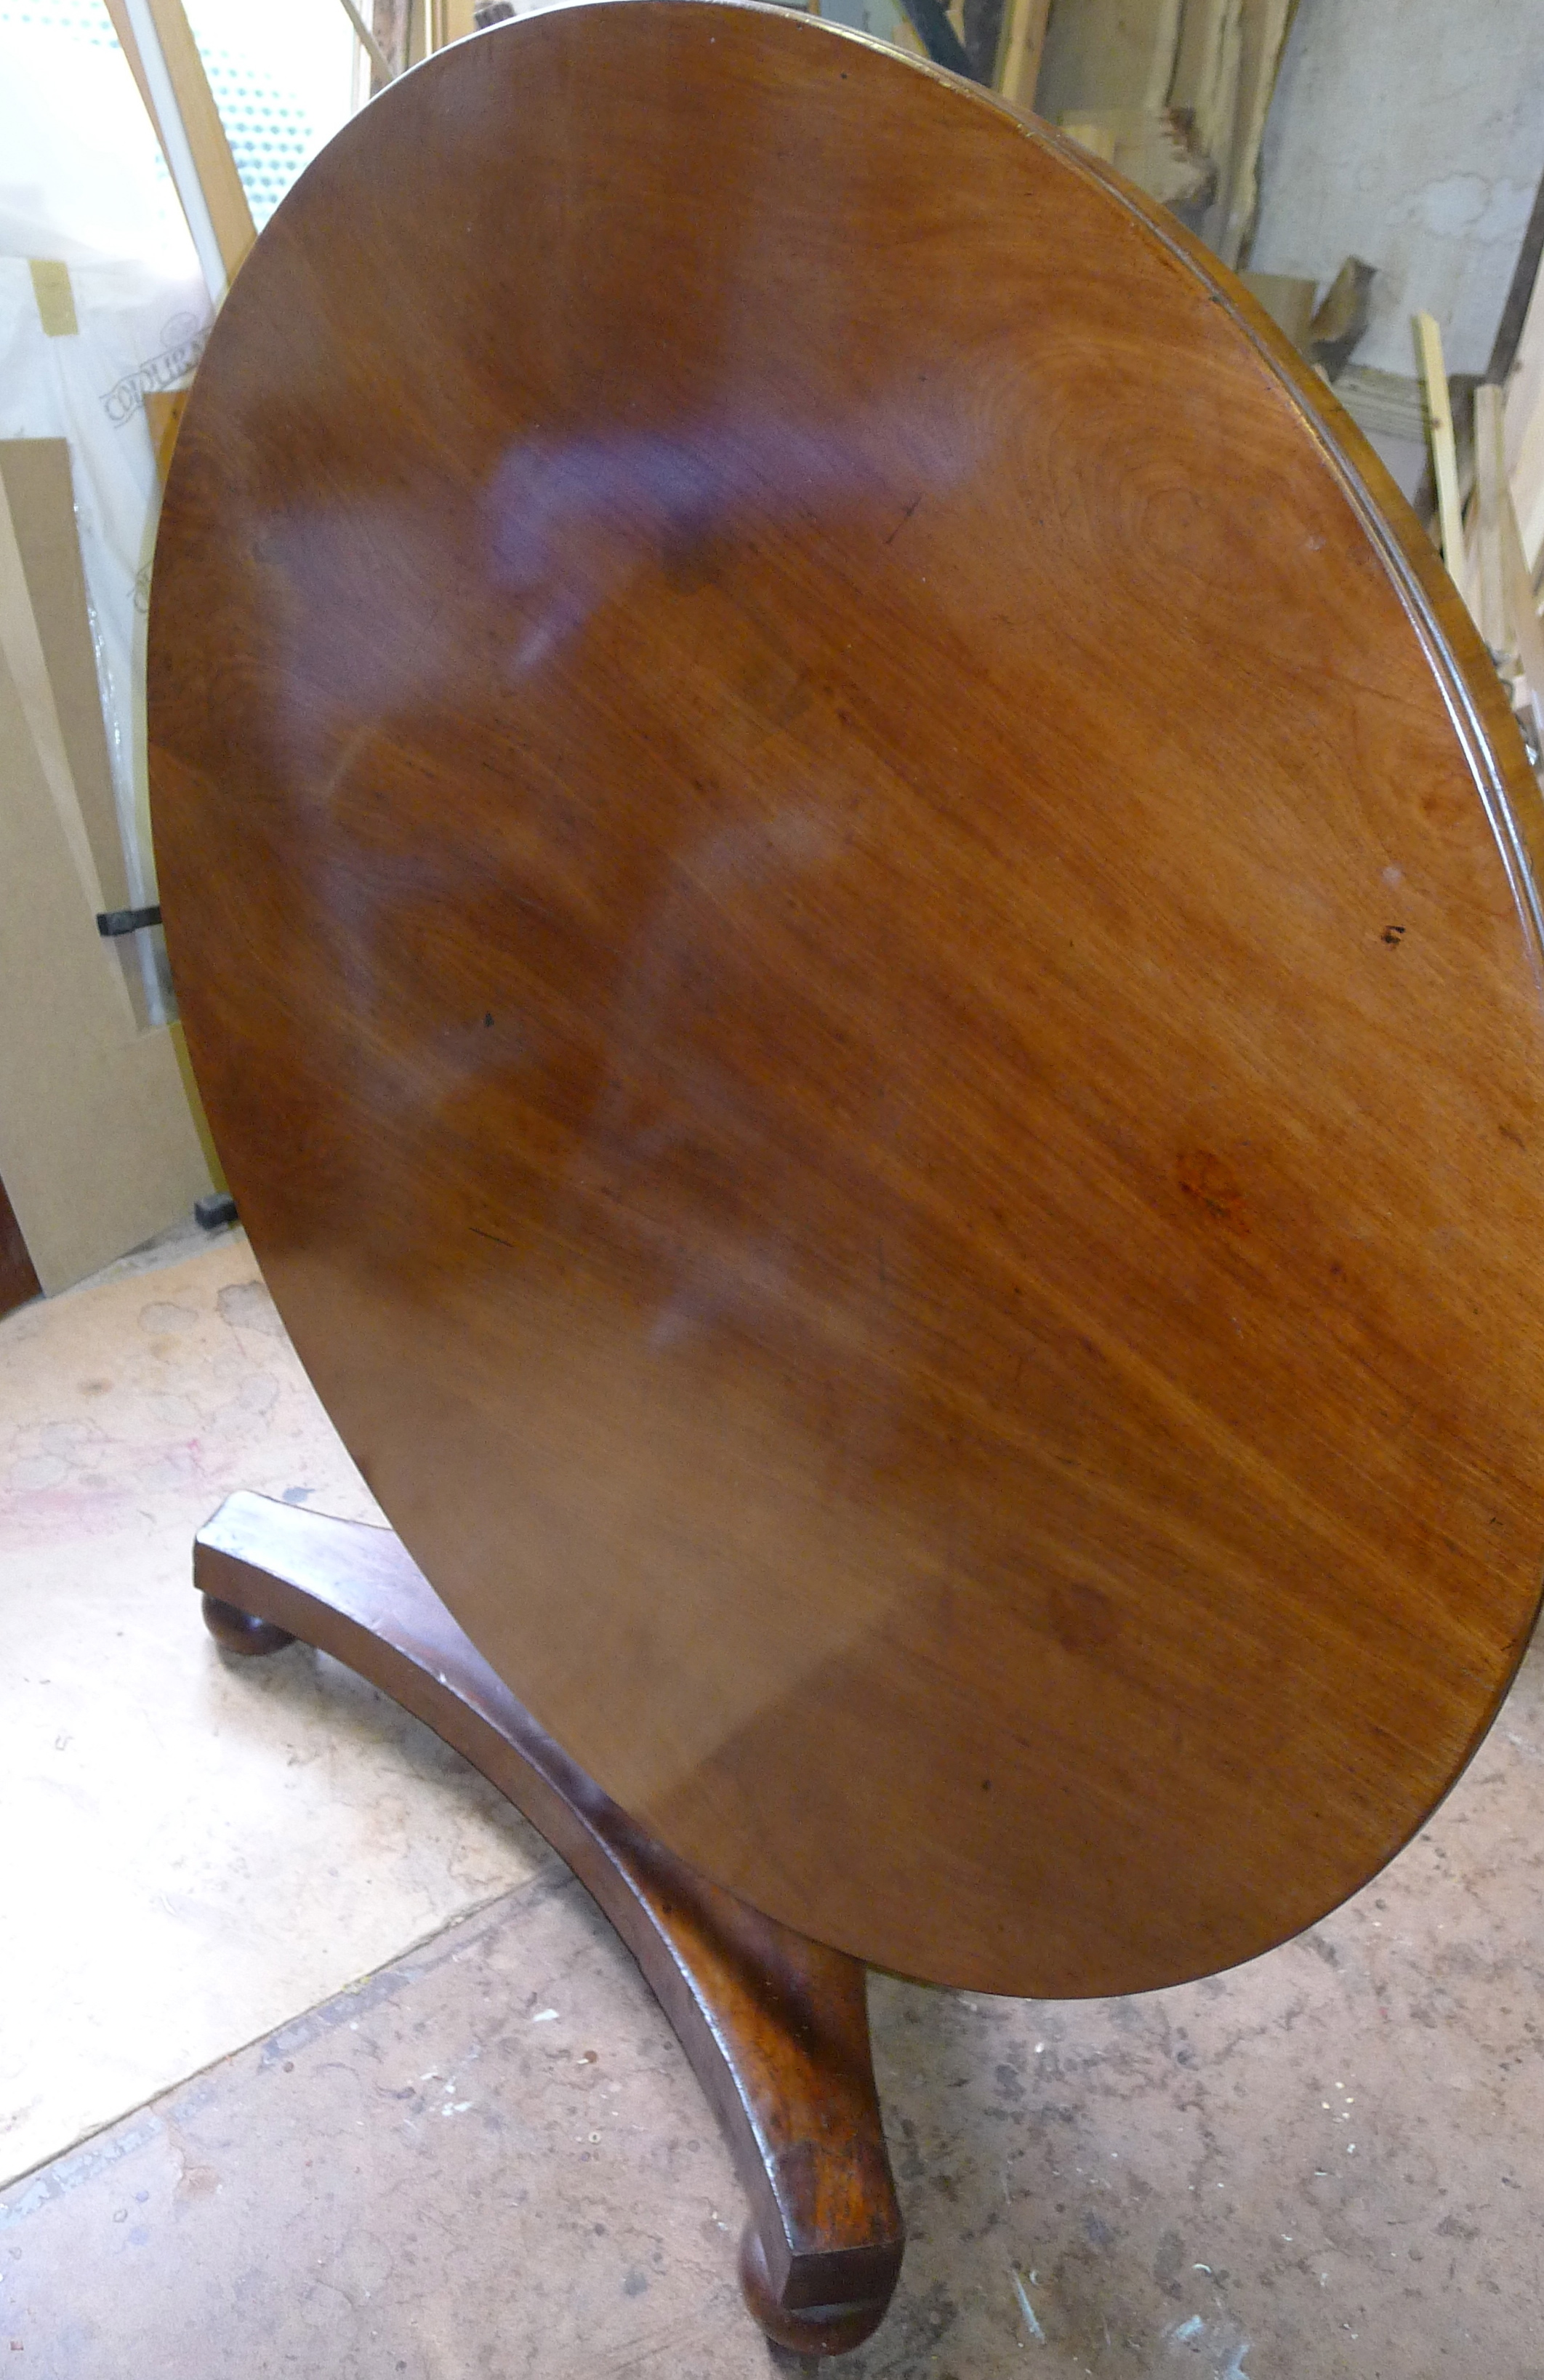 The same table after french polishing.